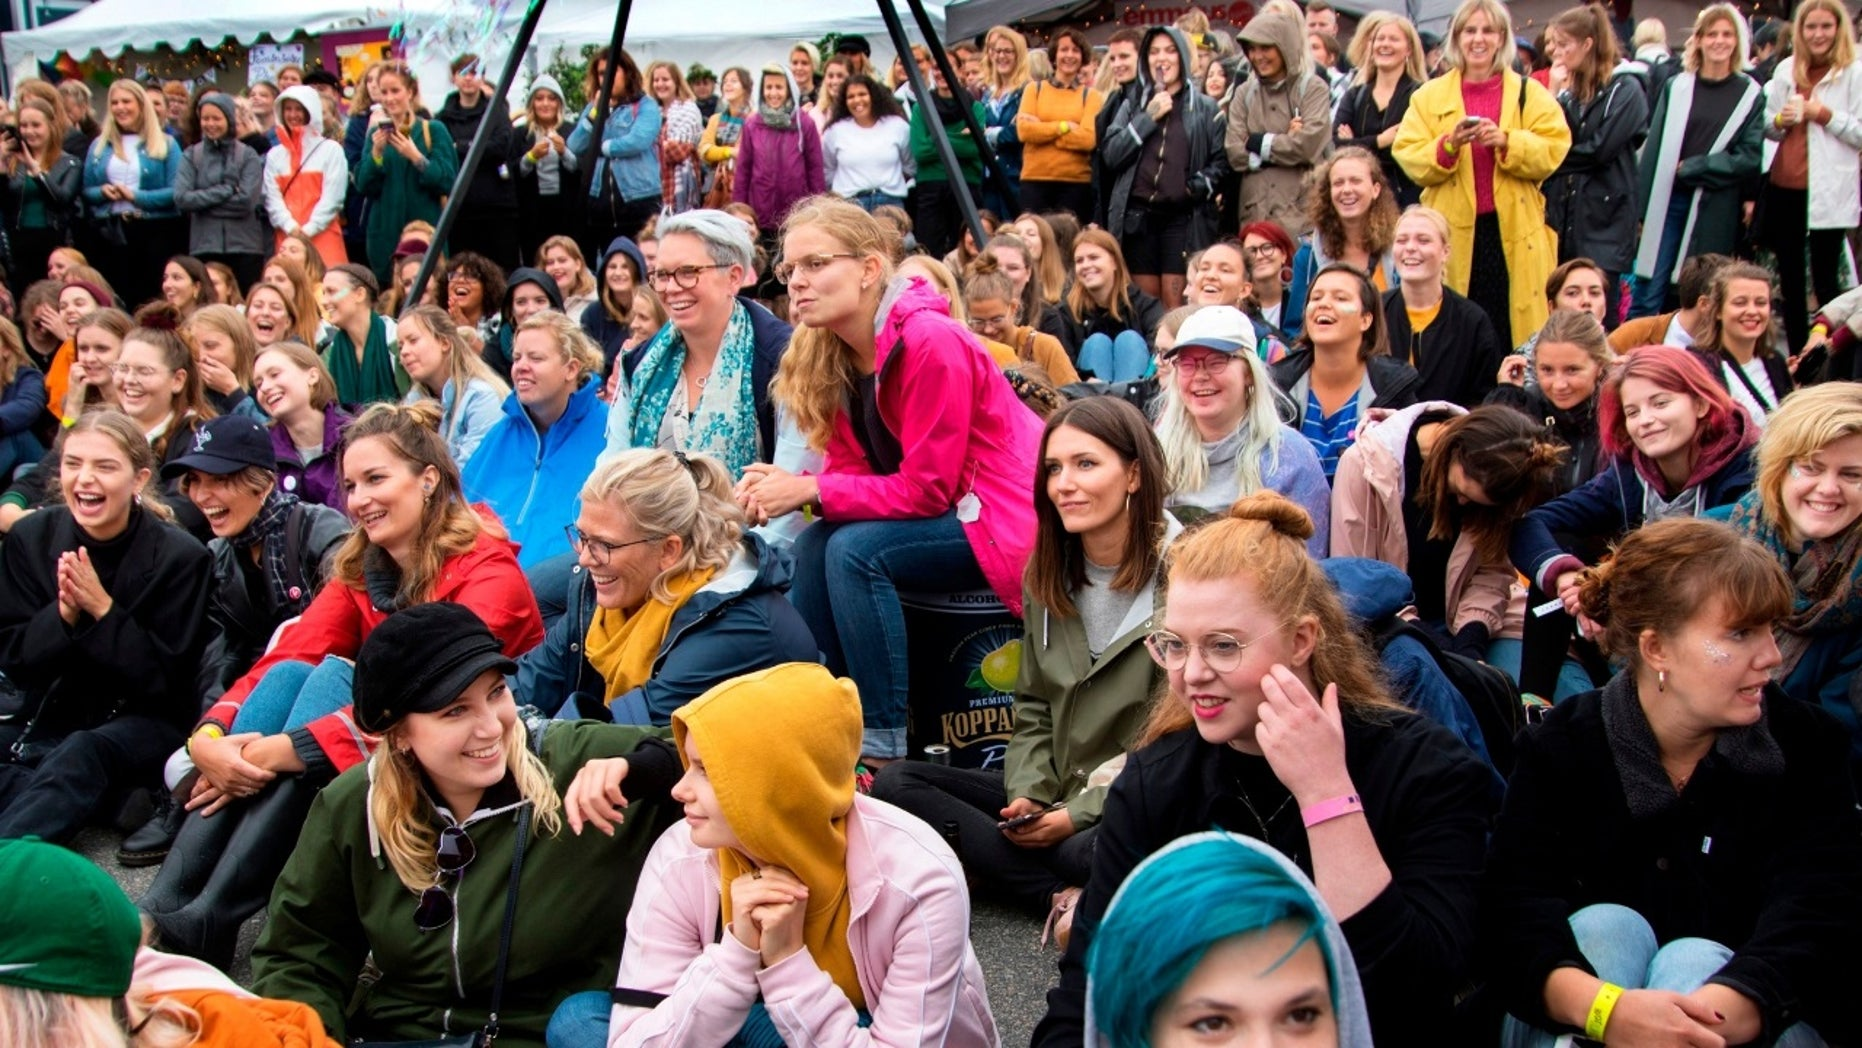 People gathered at the Statement Festival in Gothenburg, Sweden, on Aug. 31, 2018.